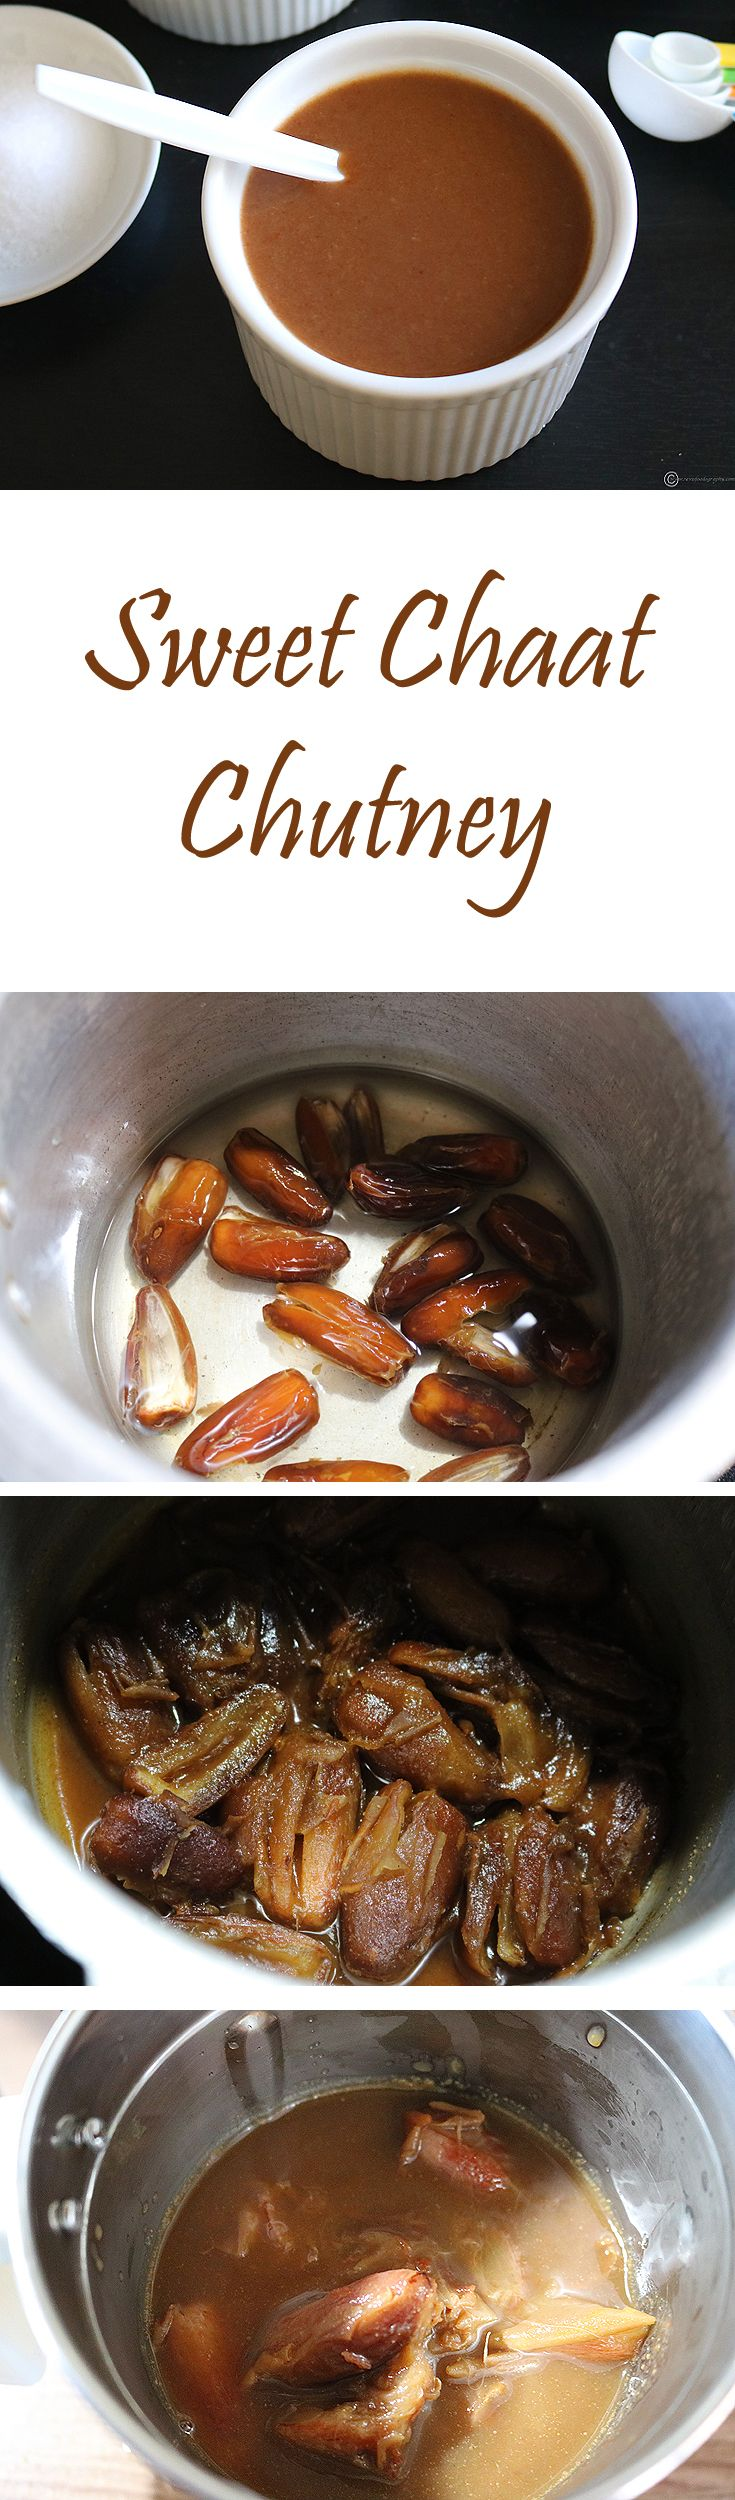 A sweet, tangy and spicy chutney made primarily from dates, tamarind and jaggery. It is the perfect ingredient to add a bit of sweetness and zing to any Indian chaat or to be used just as a side for hot samosa or pakoda.